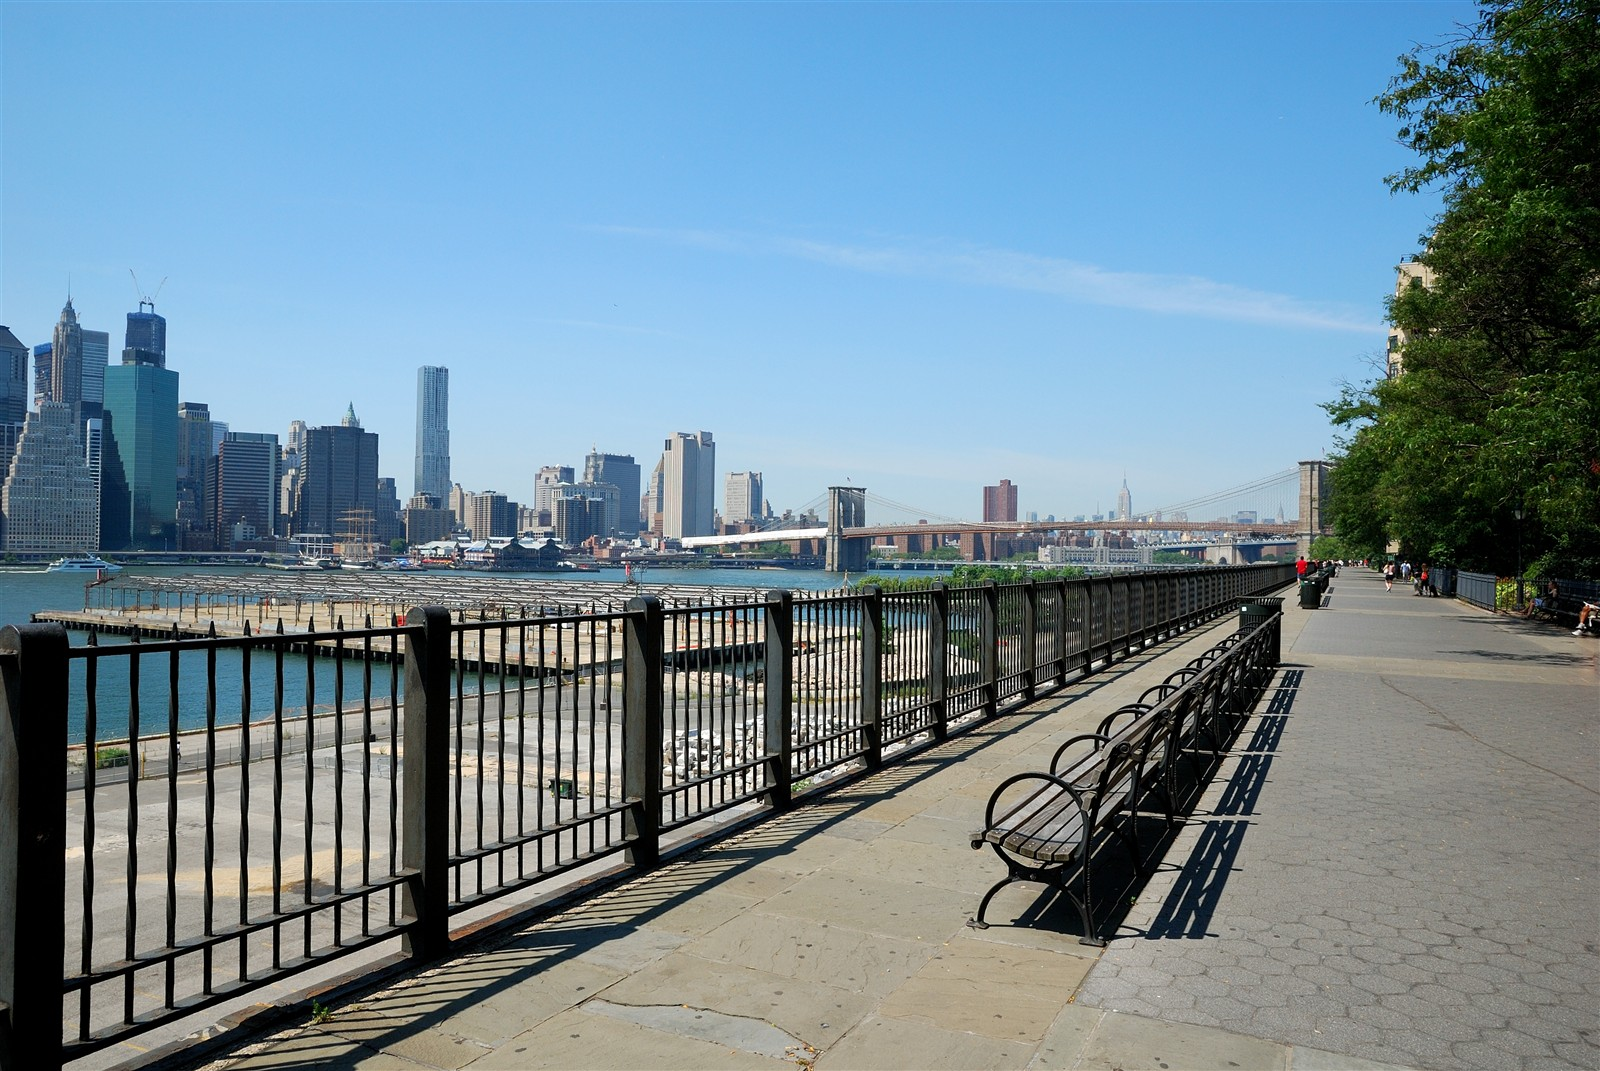 Vue de la promenade de Brooklyn Bridge Park